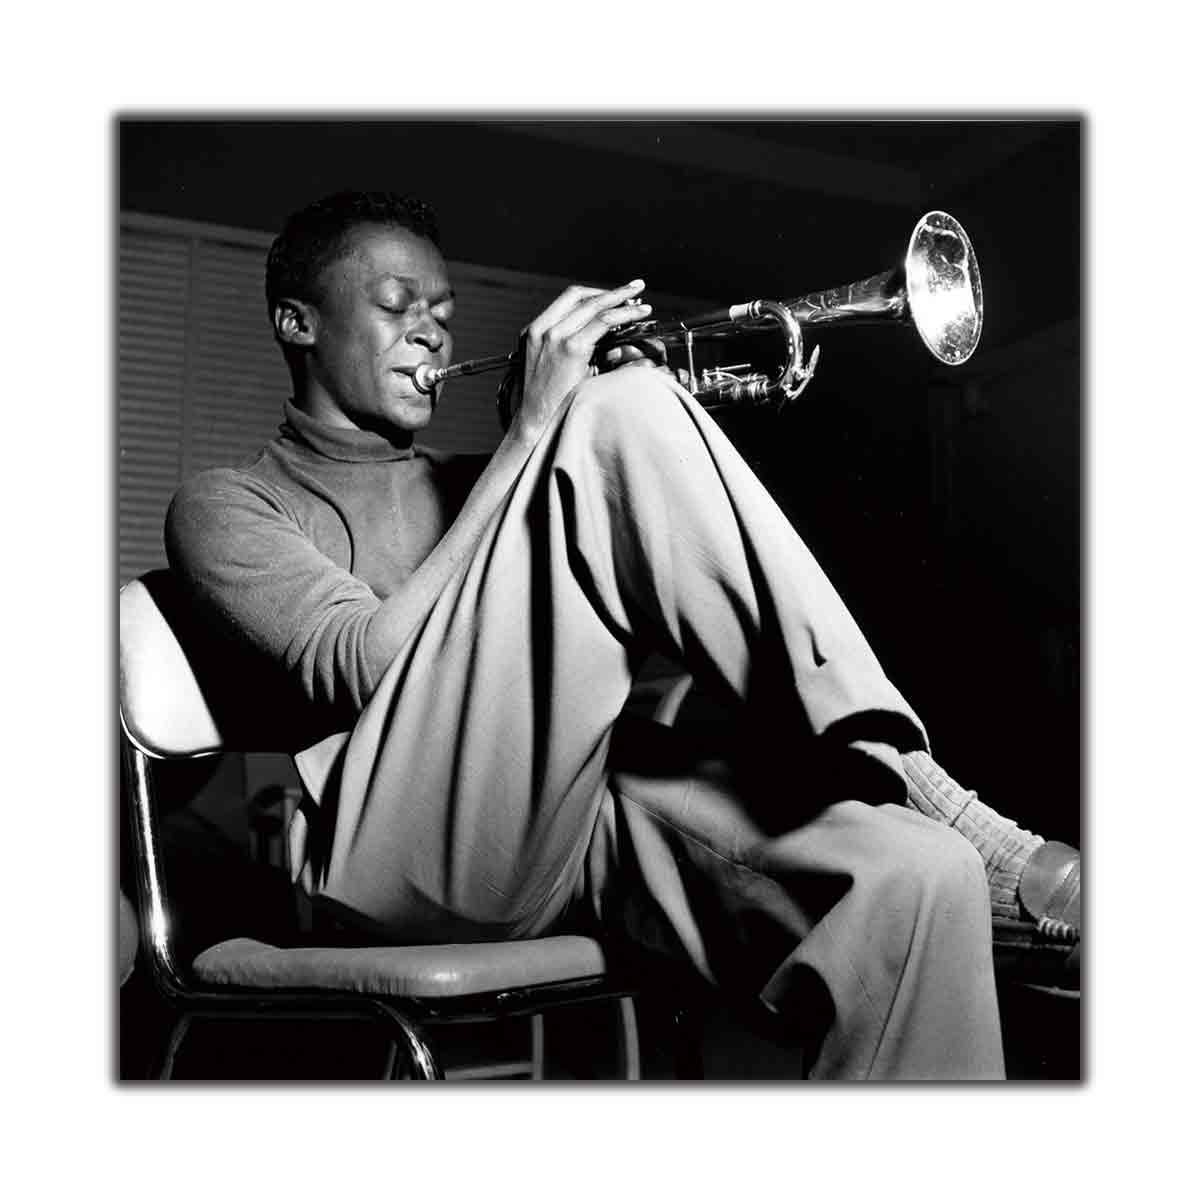 Miles Davis Kind Of Blue Jazz Music Classic Album Art Poster Print Wall decoration decor canvas room decor12x12 24x24 20x20in image